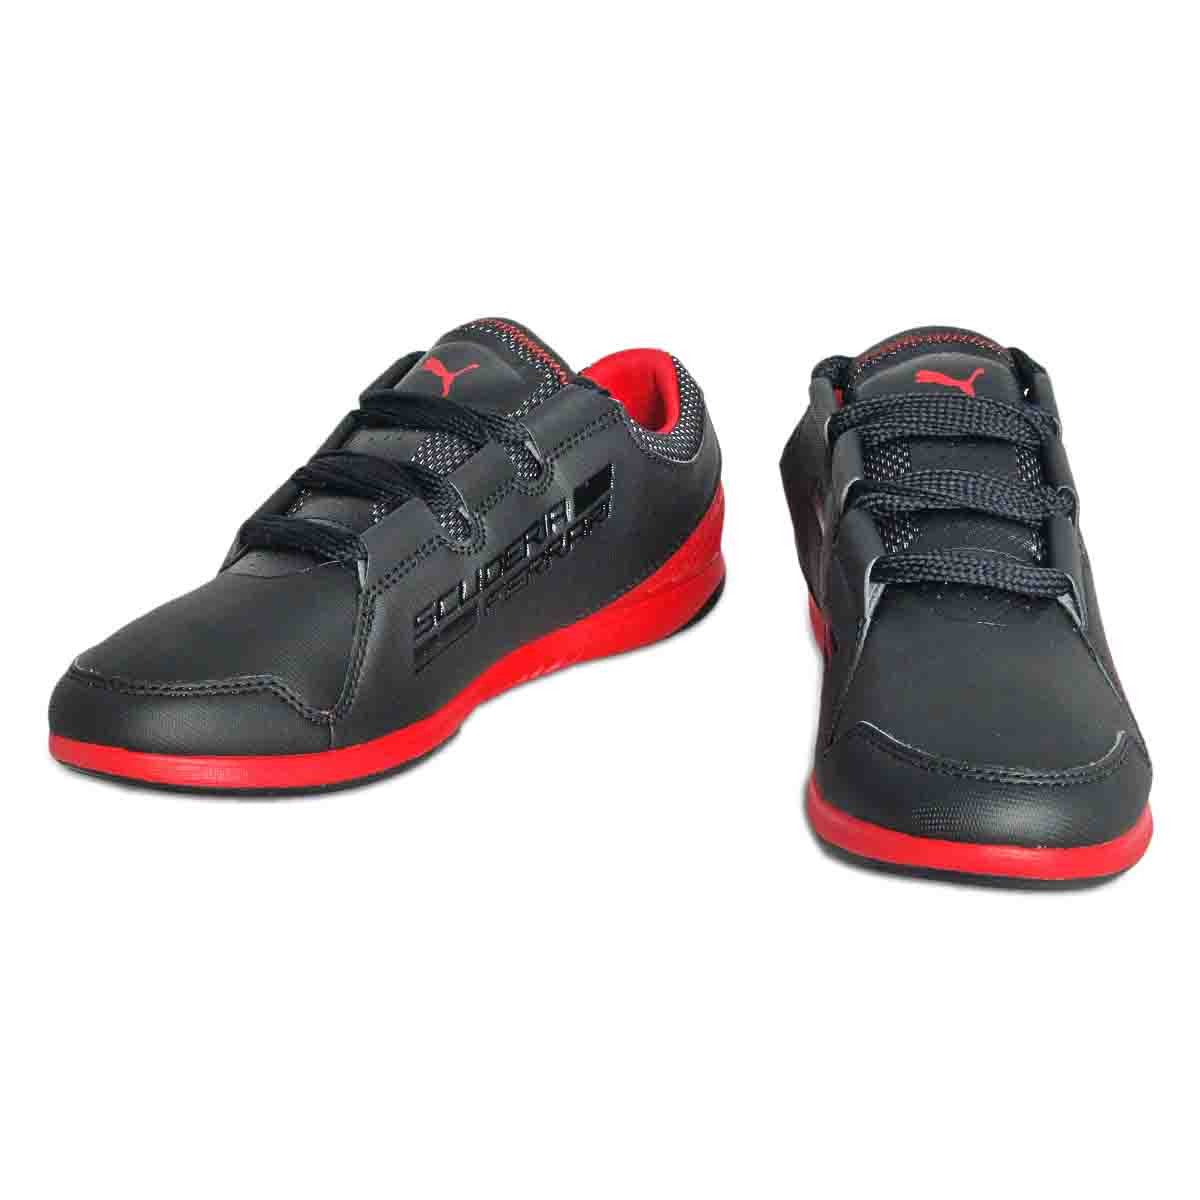 4458e5d6b961b7 puma ferrari shoes men size 11 - Grandt s Auto Repair